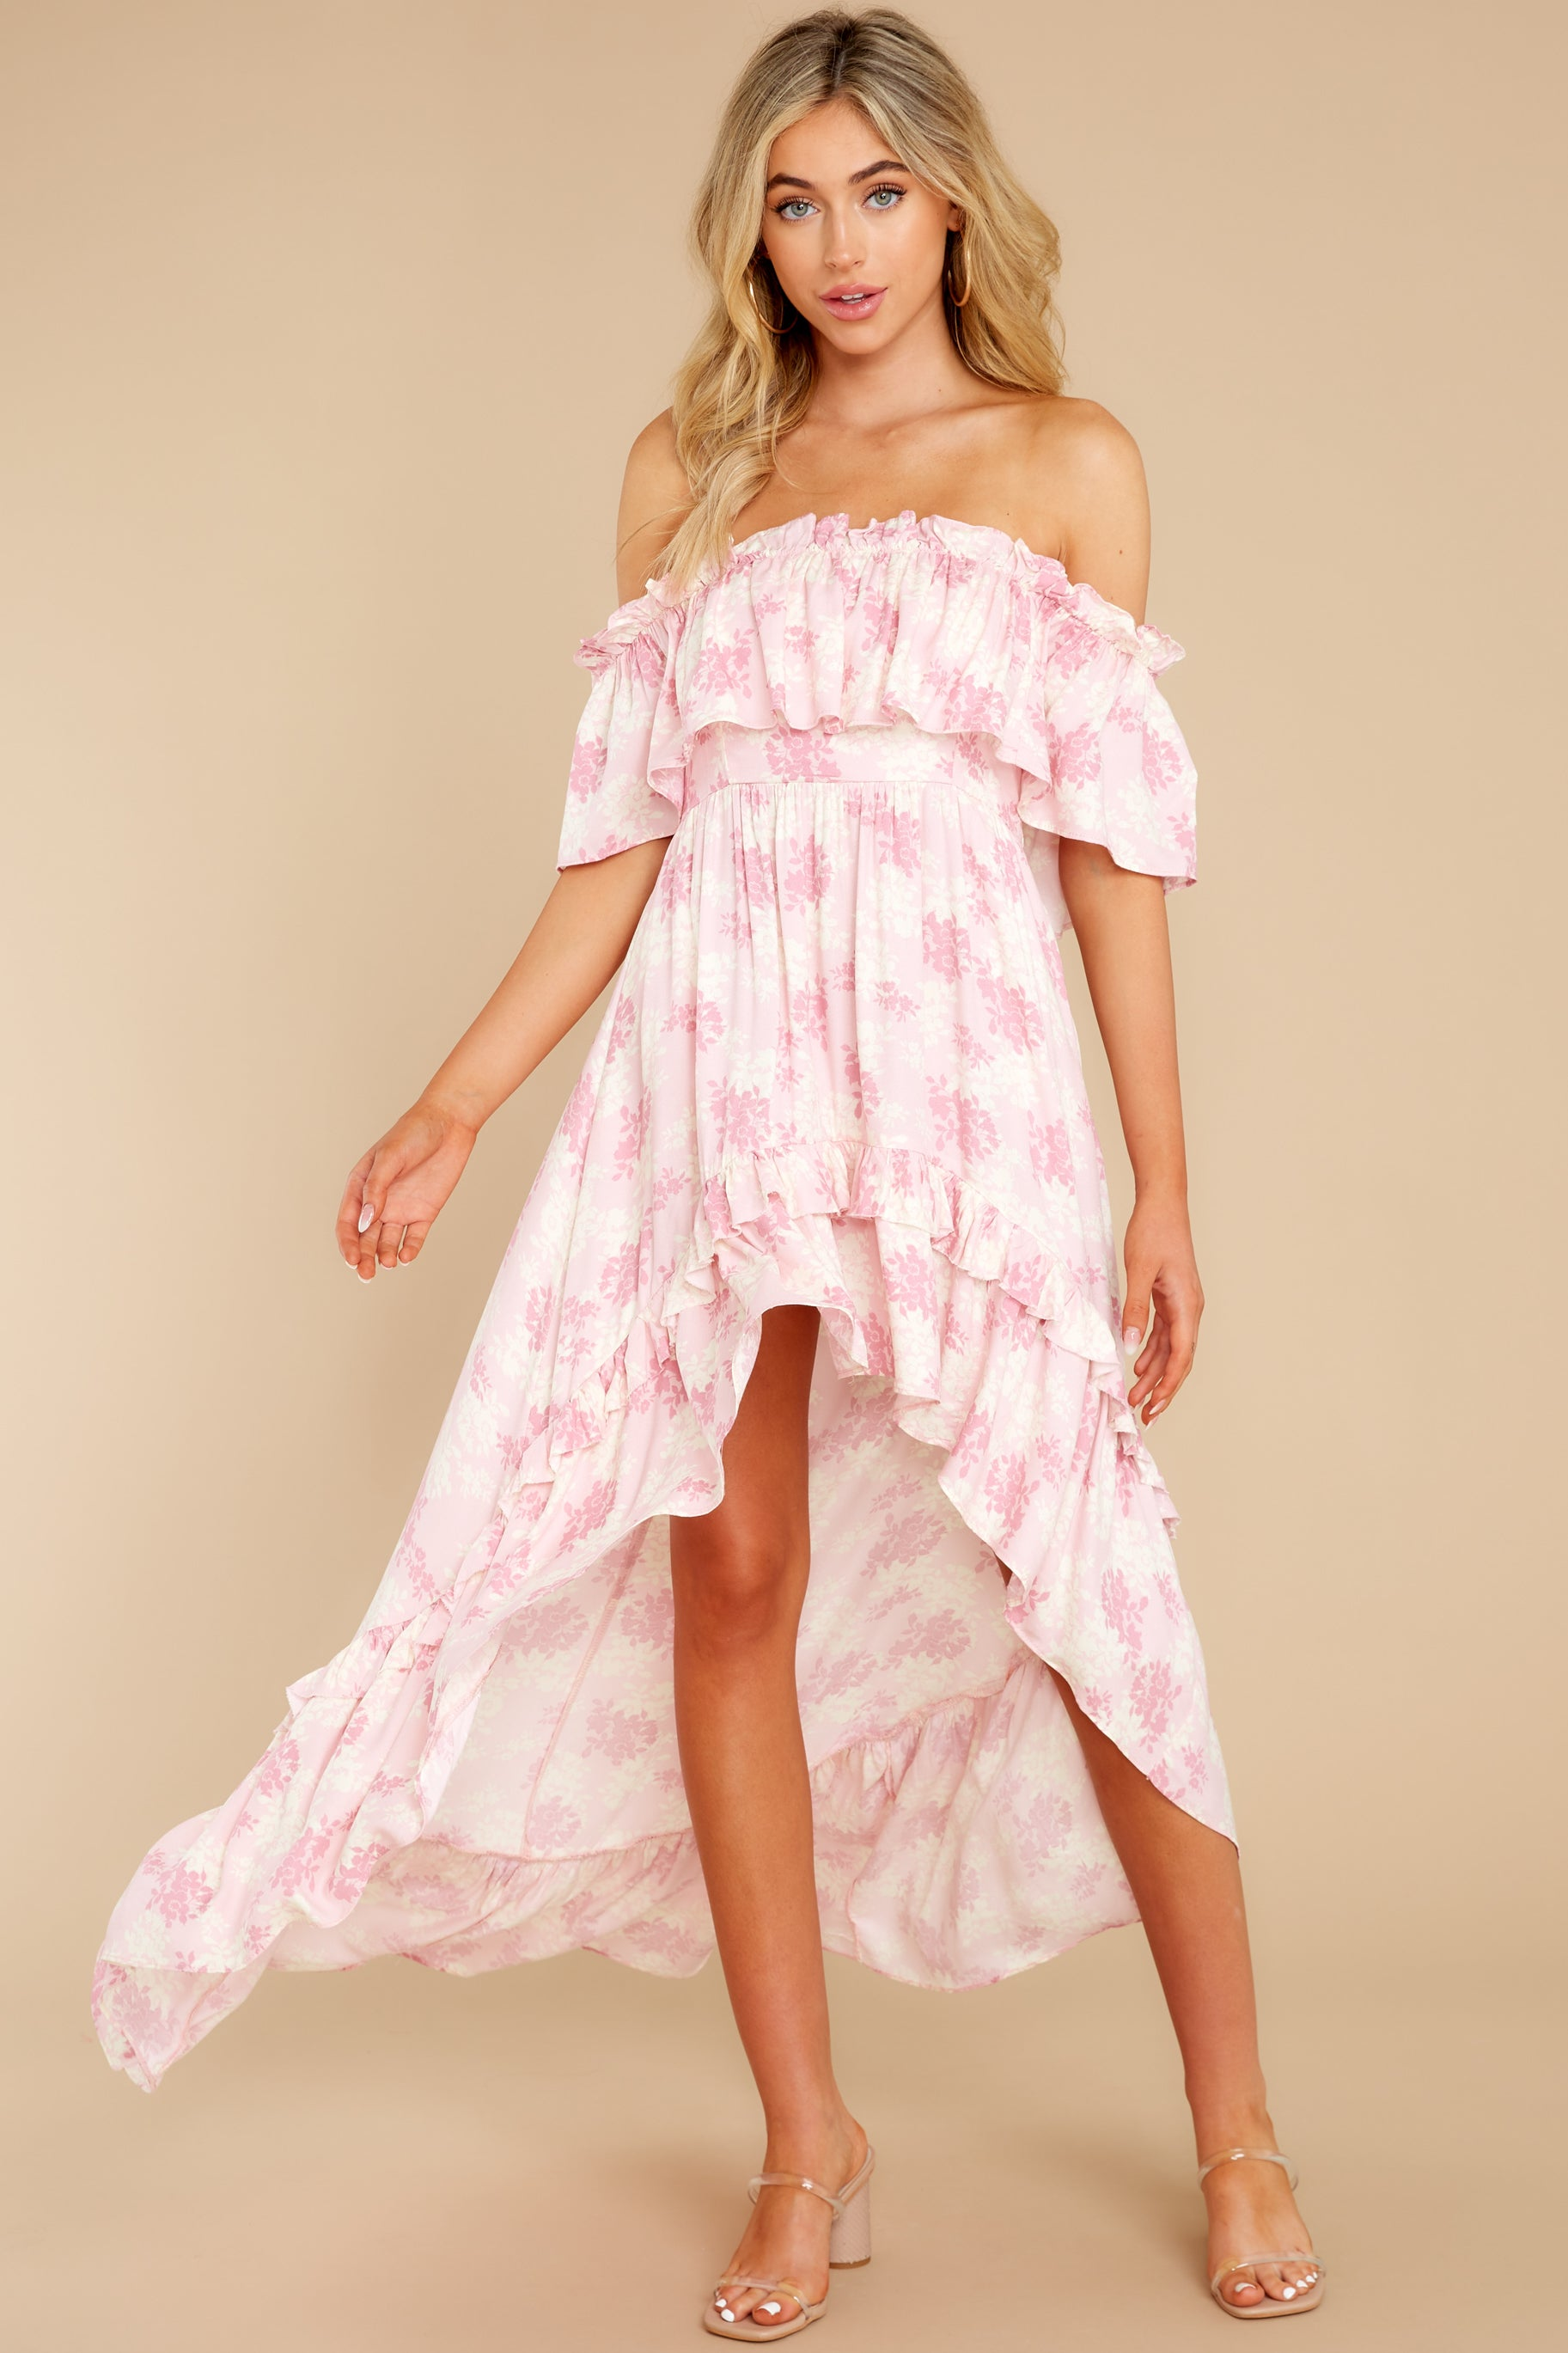 2 Instant Romance Pink Multi Print High-Low Dress at reddress.com